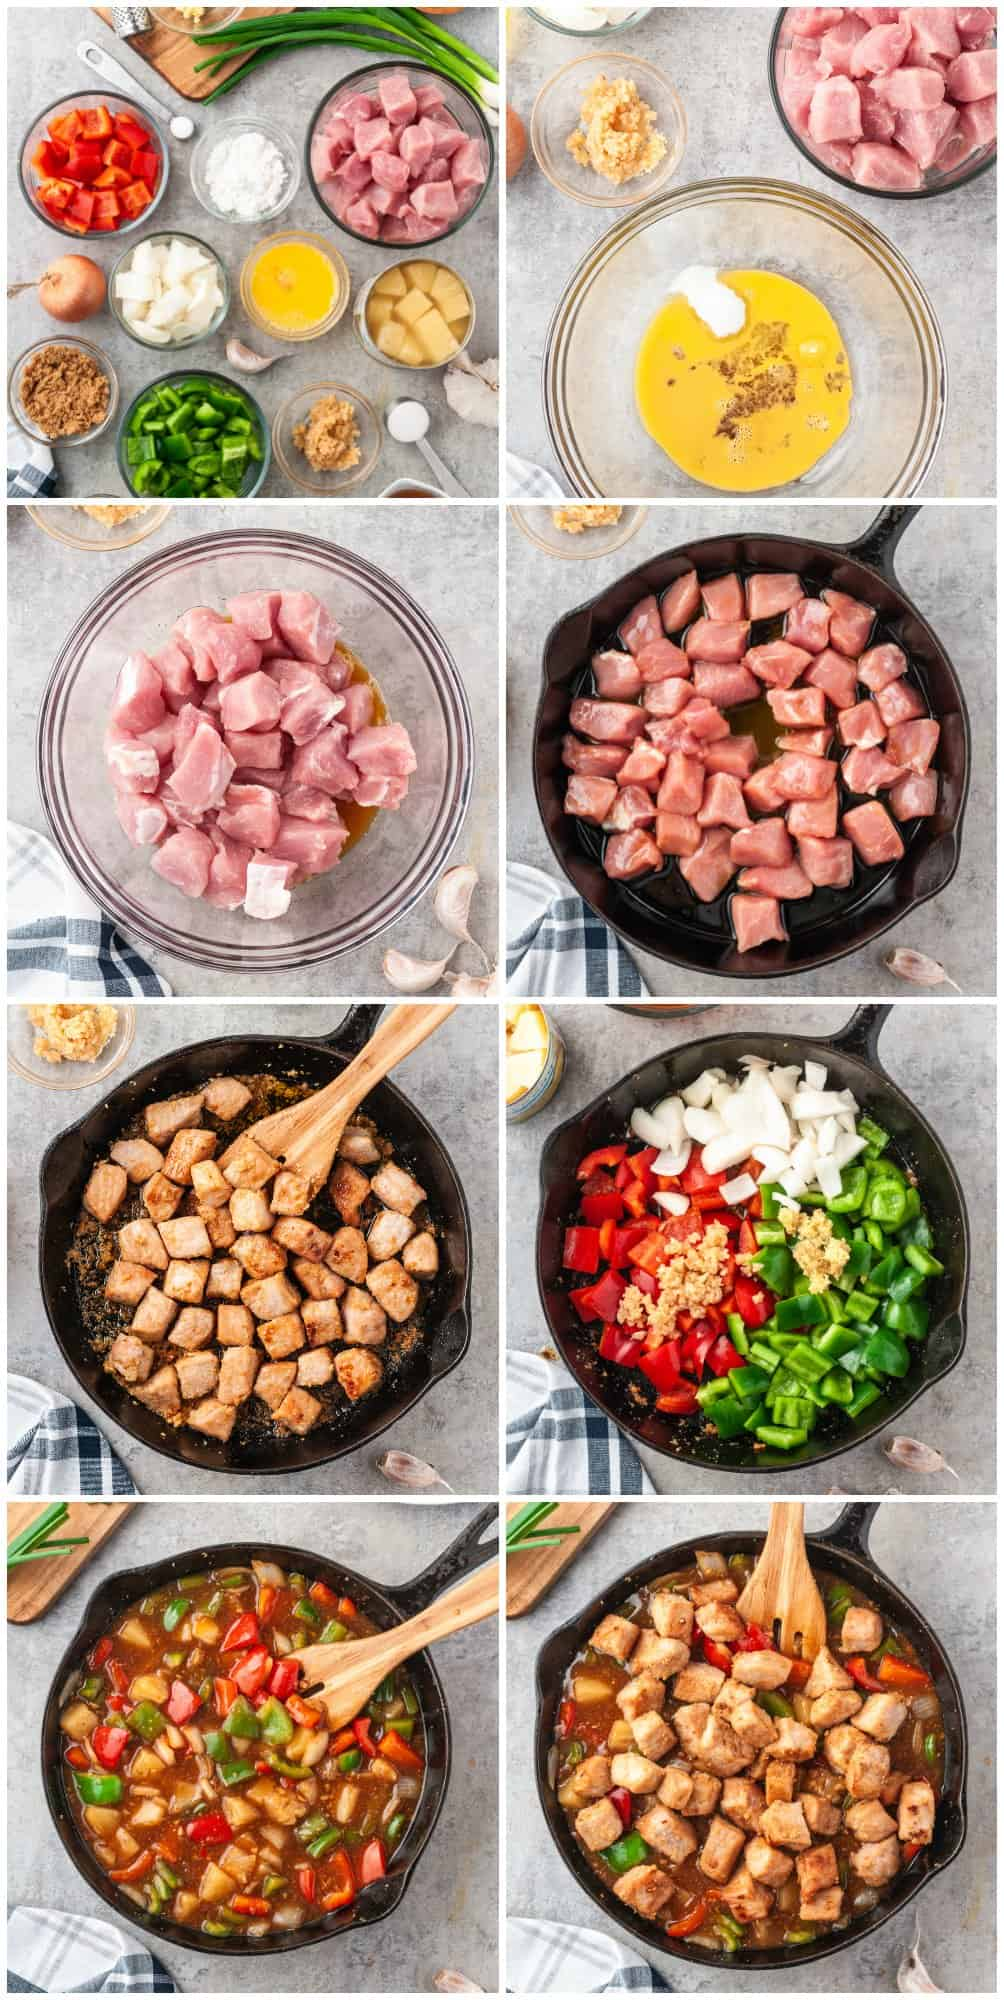 step by step photos for how to make sweet and sour pork